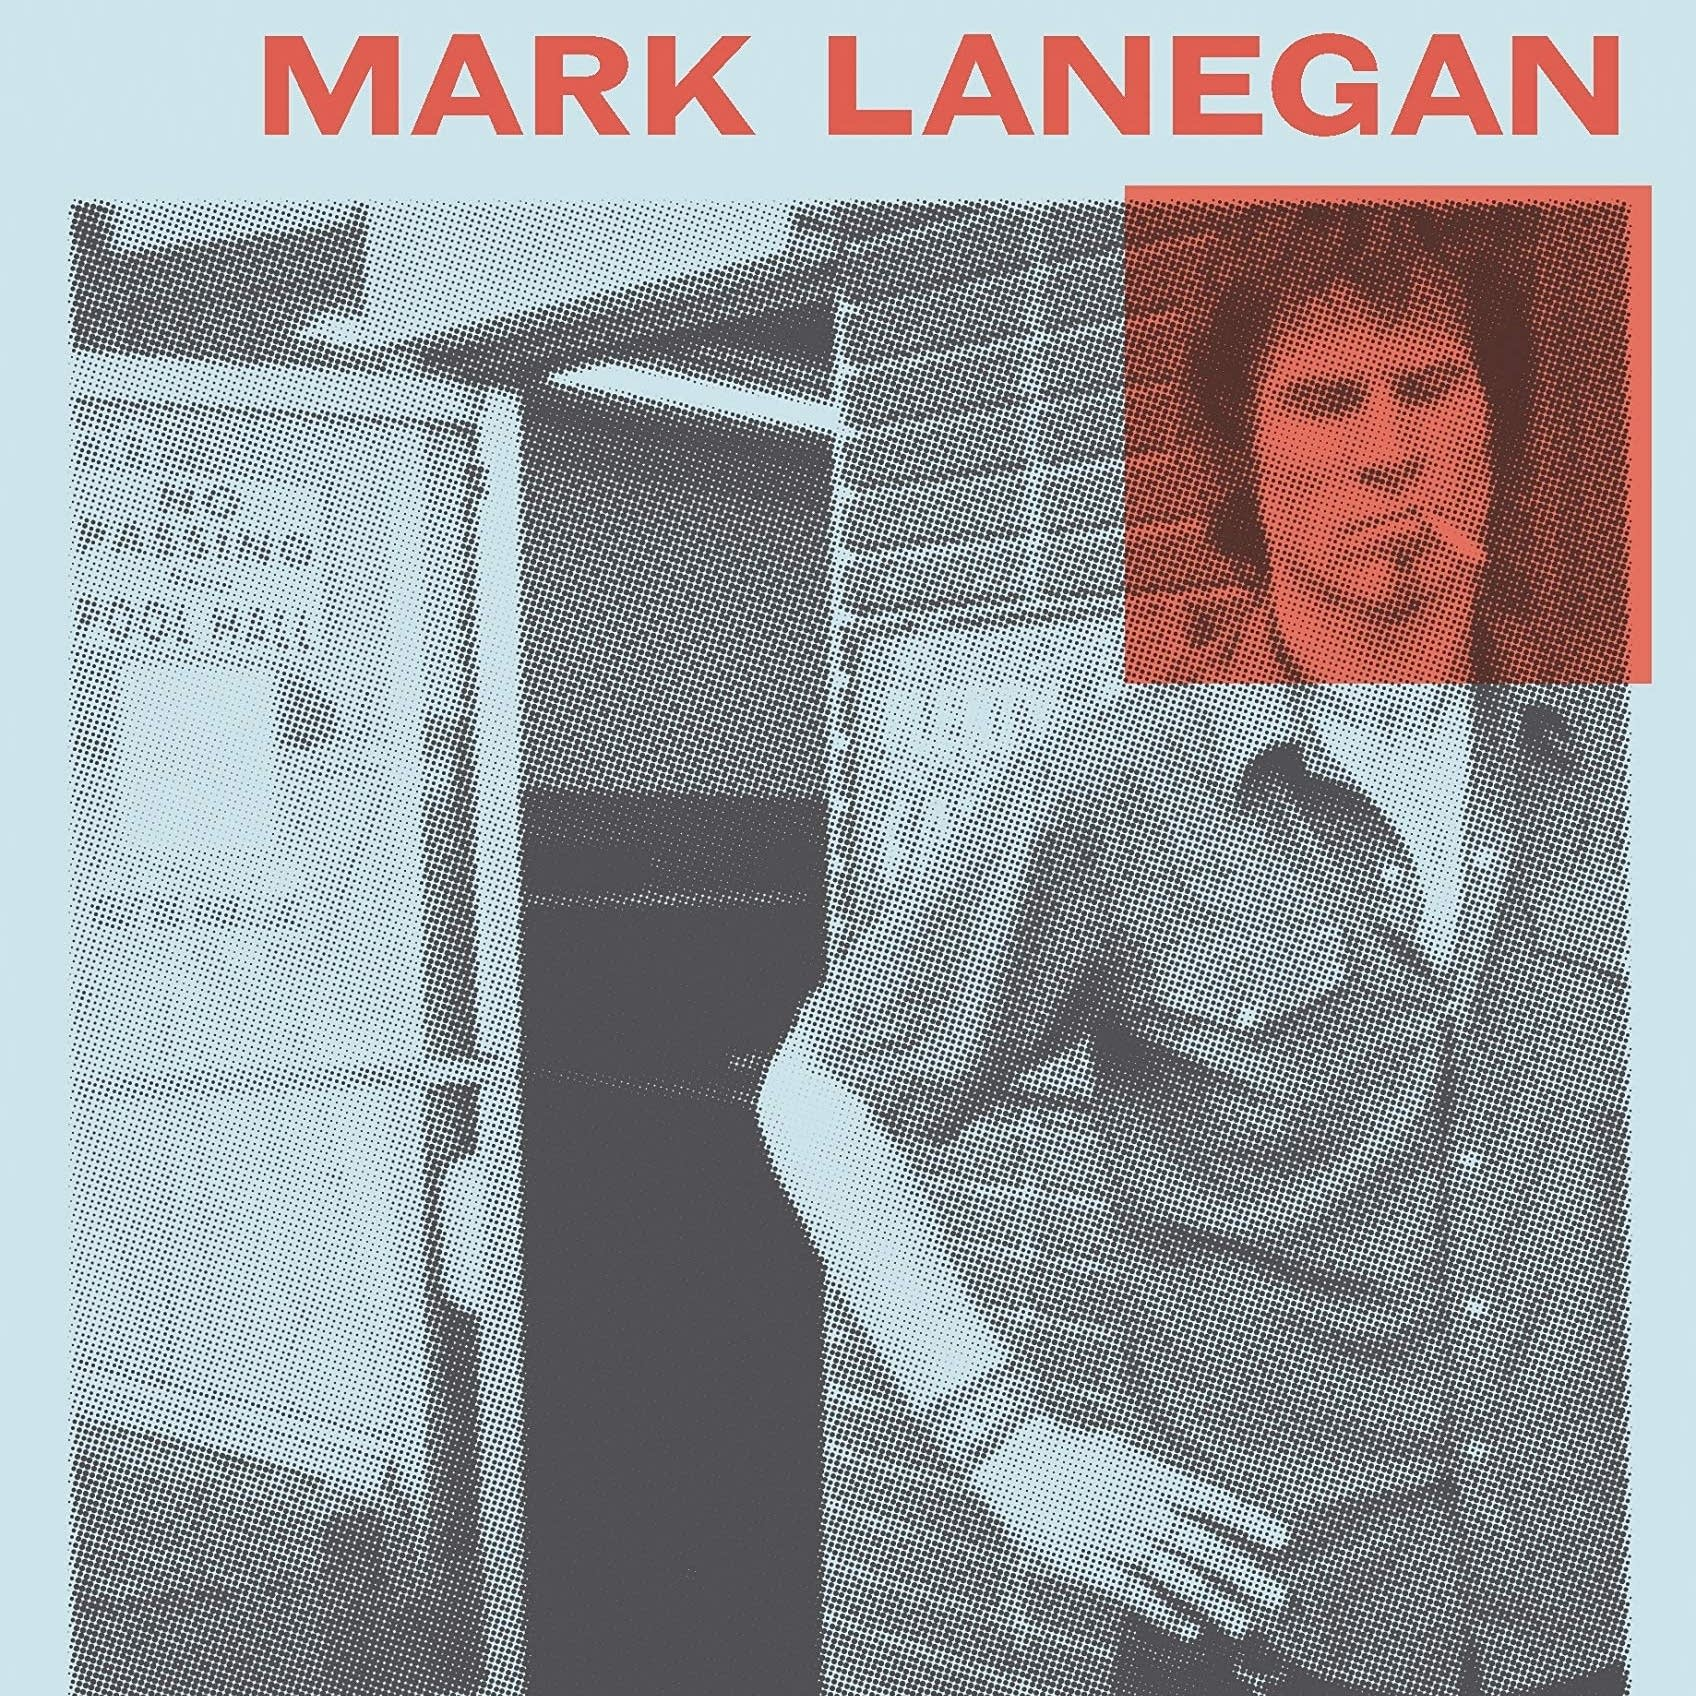 Mark Lanegan, 'Sing Backwards and Weep' book cover detail.